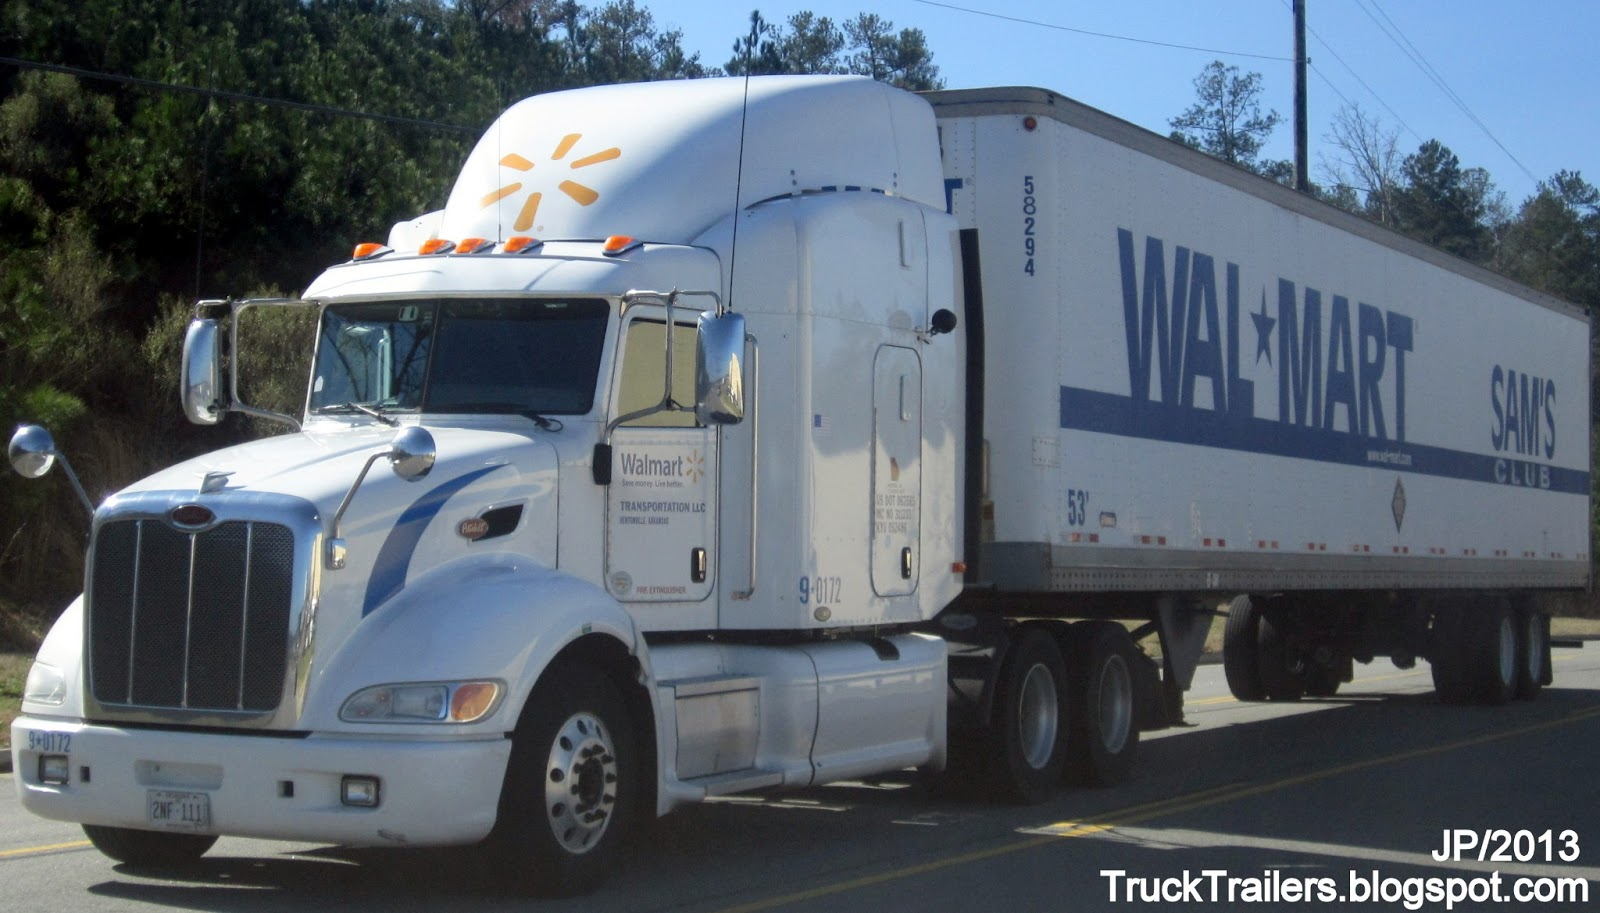 Hoyer Tankcontainer Chemie also Falck 1 additionally Liebherr 1 in addition GMC trucks as well Vehicle Equipment Paint. on western star dump trailer semi truck